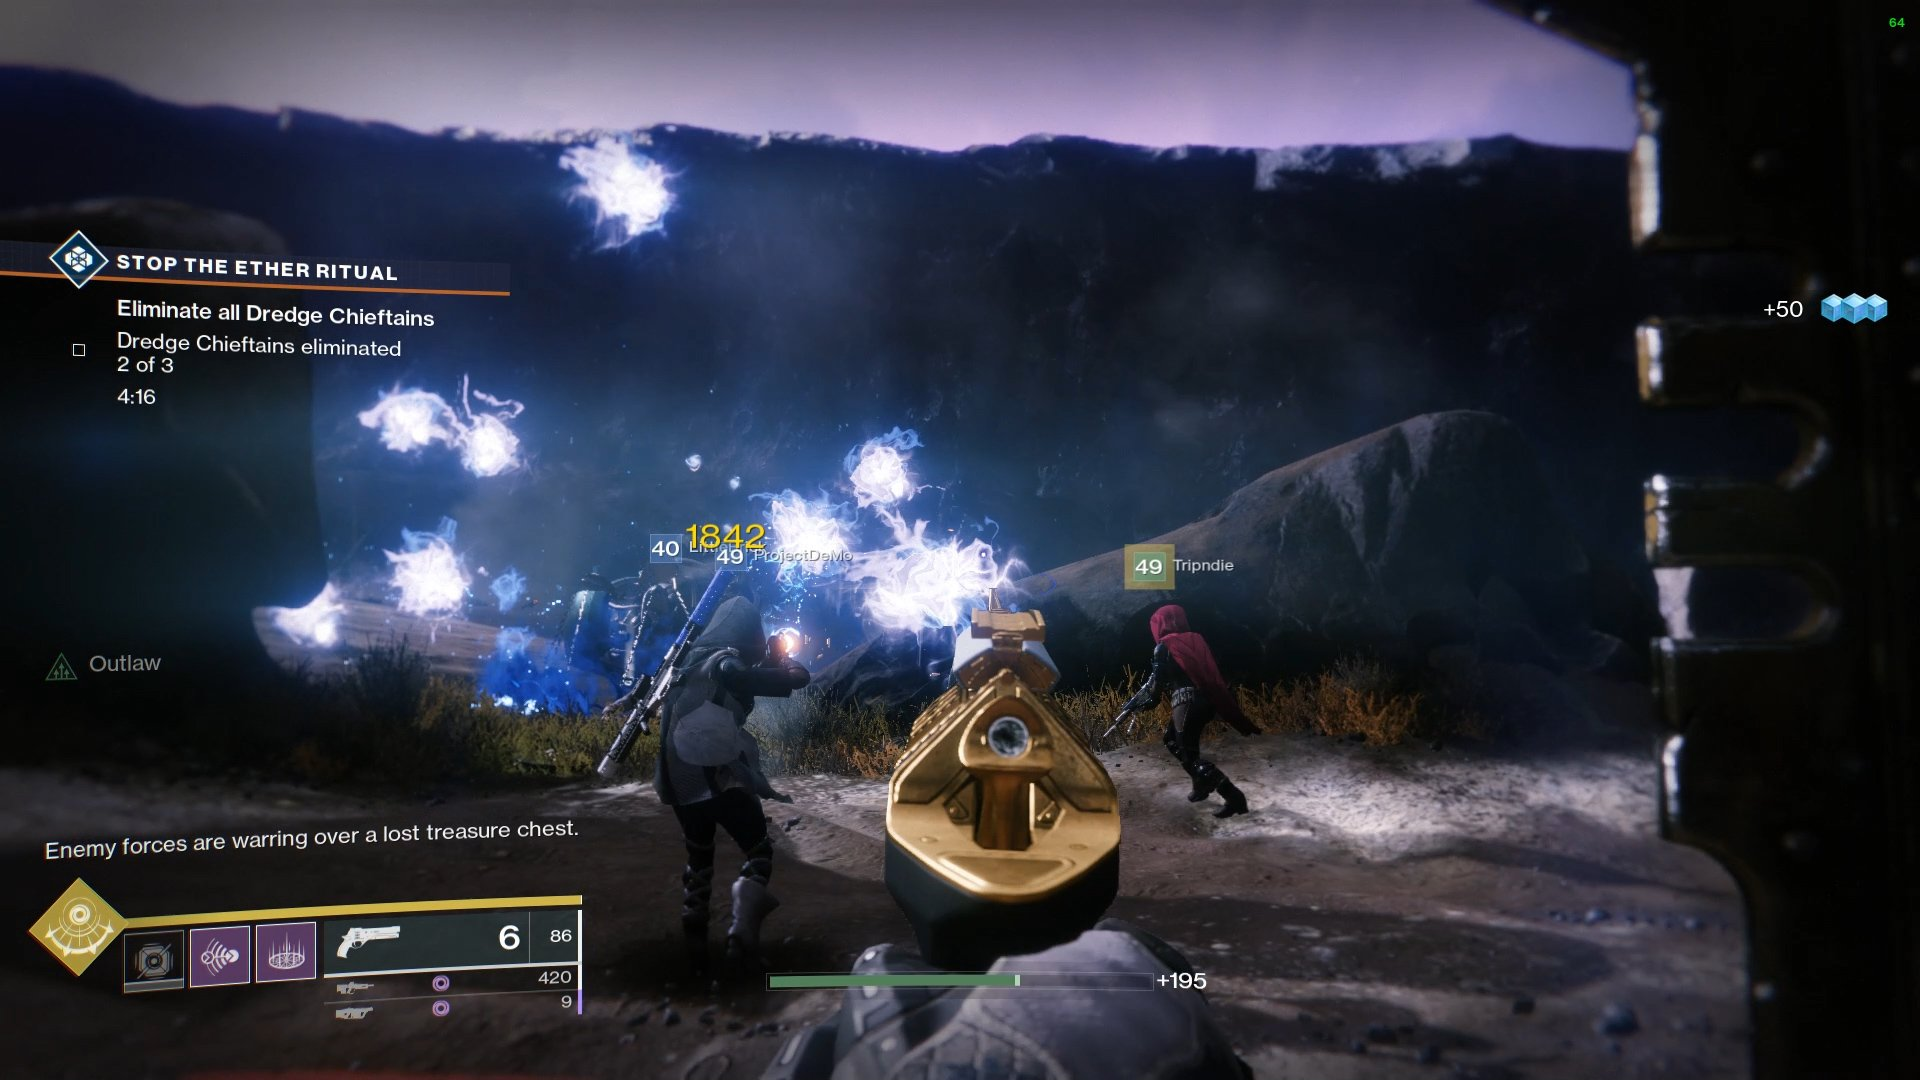 How to activate the Ether Harvest Heroic Public Event in